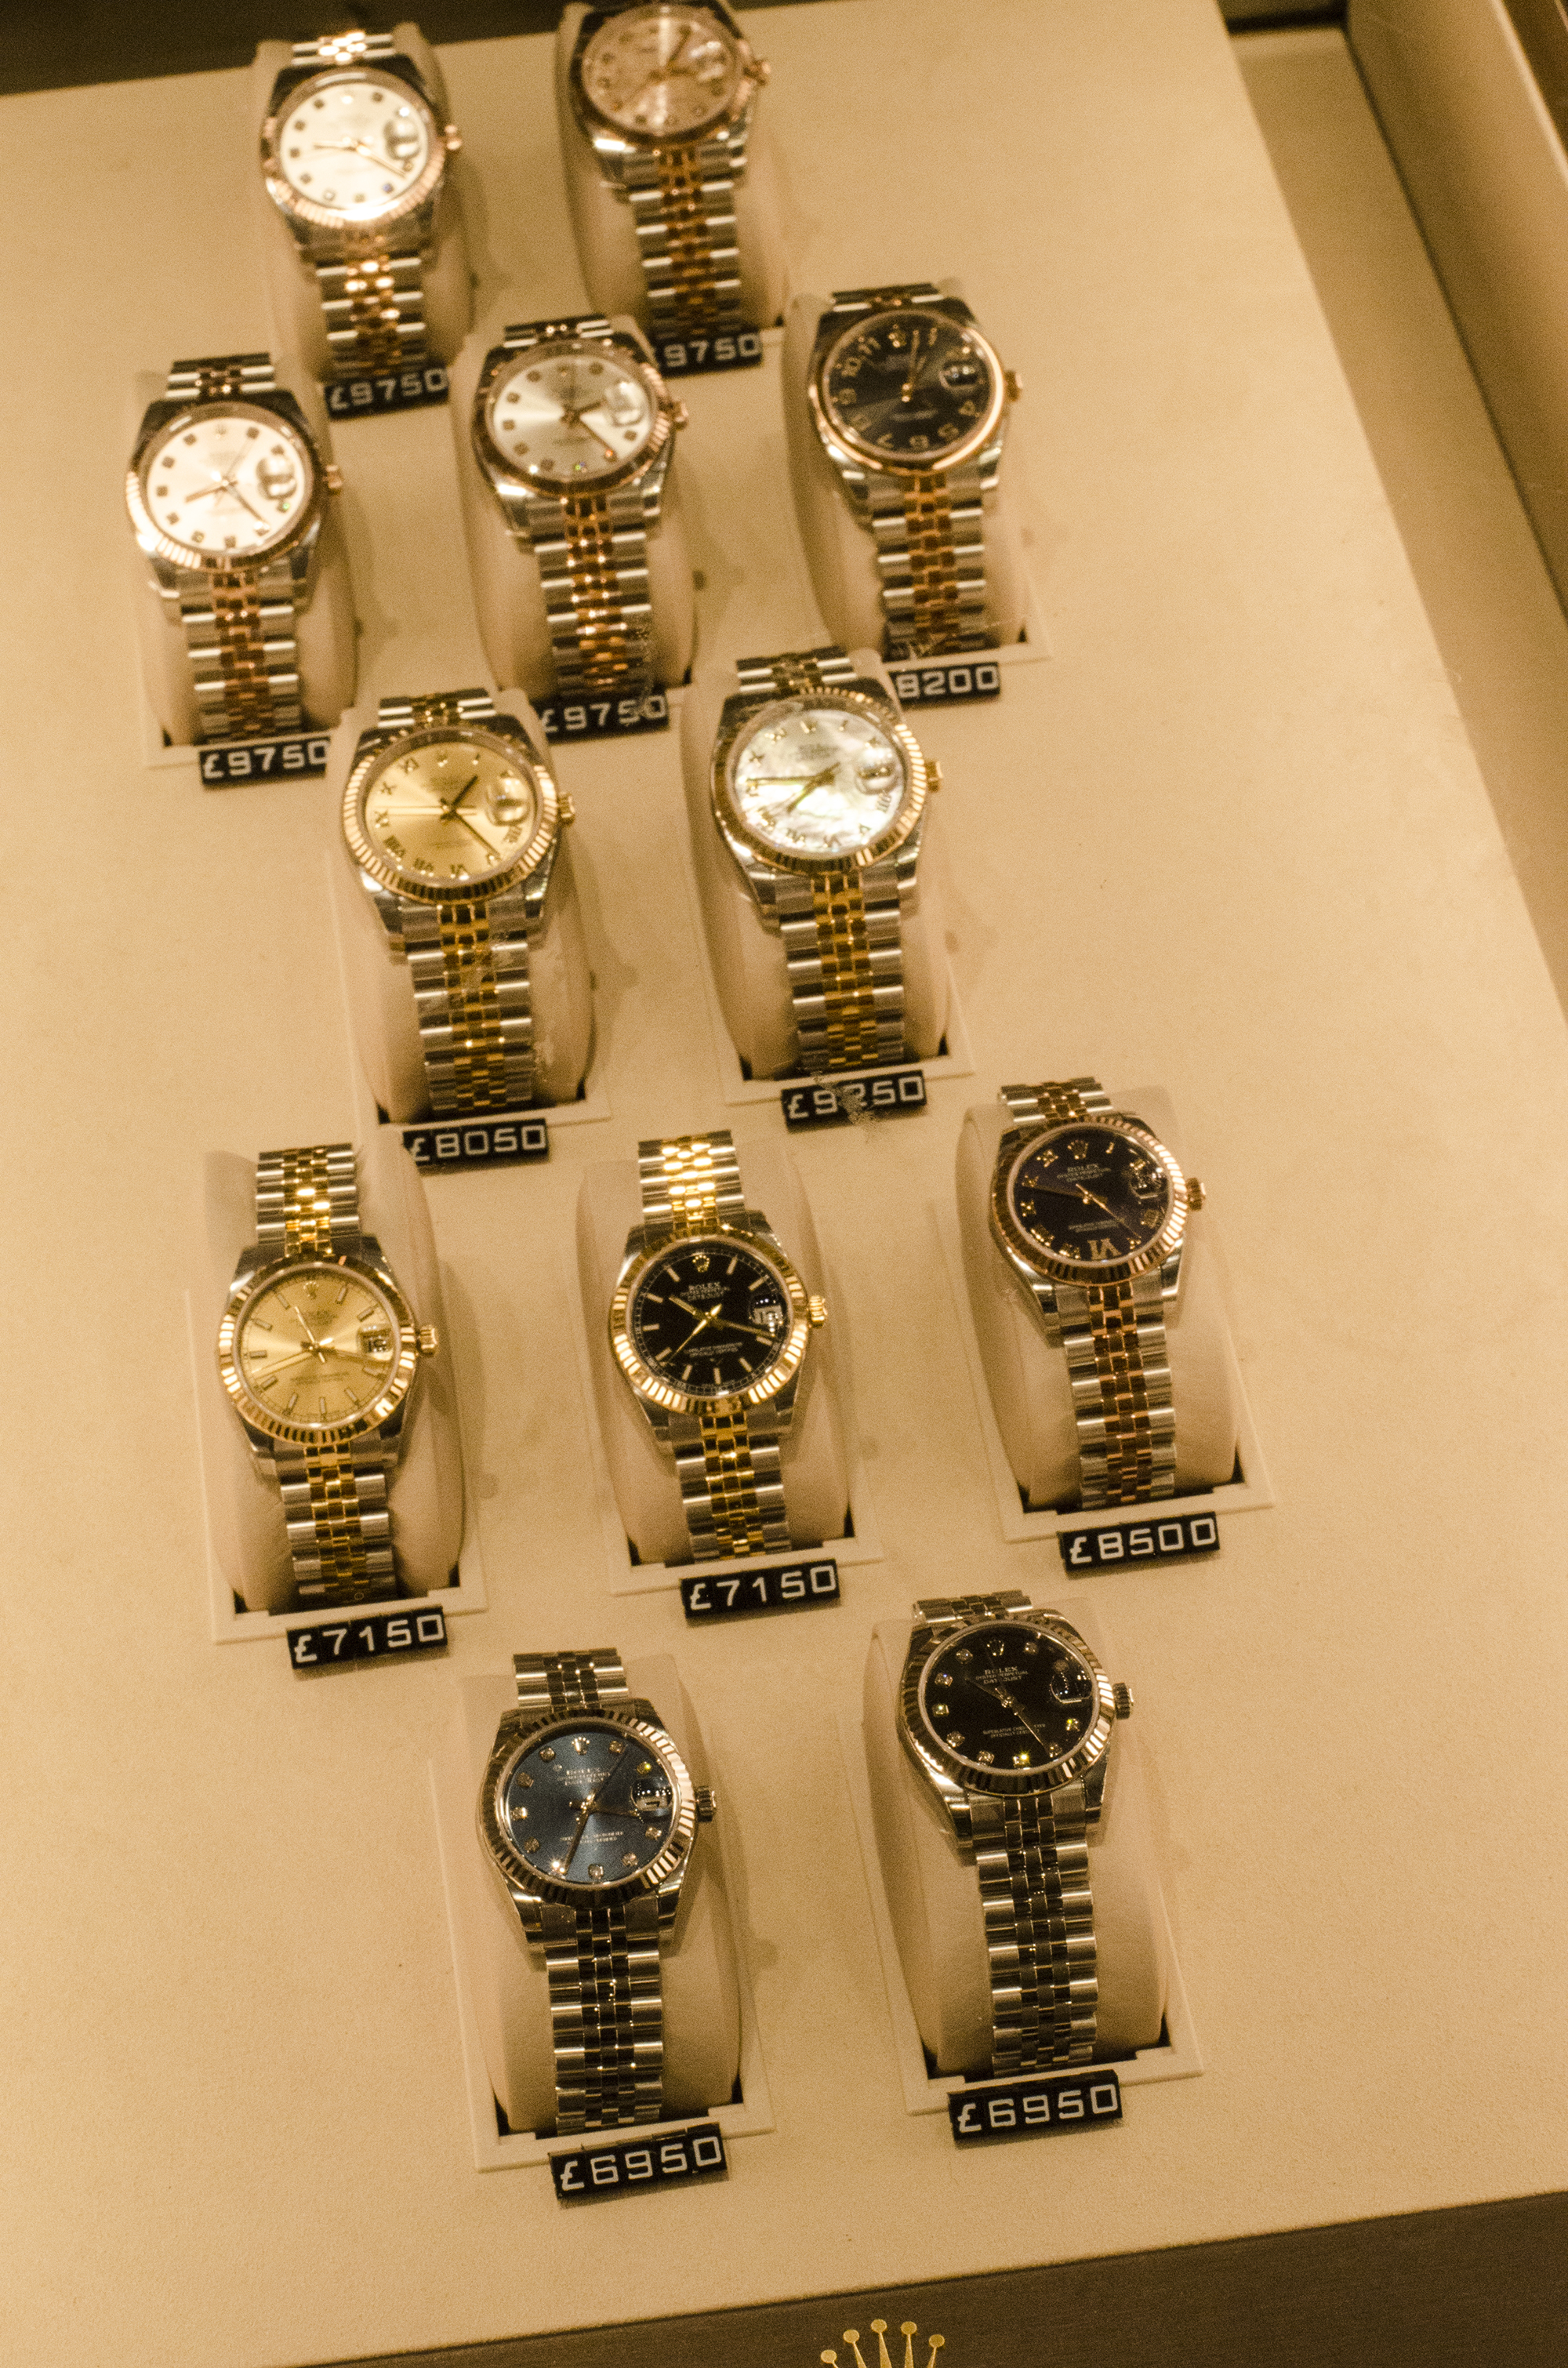 Rolex watches in Liverpool